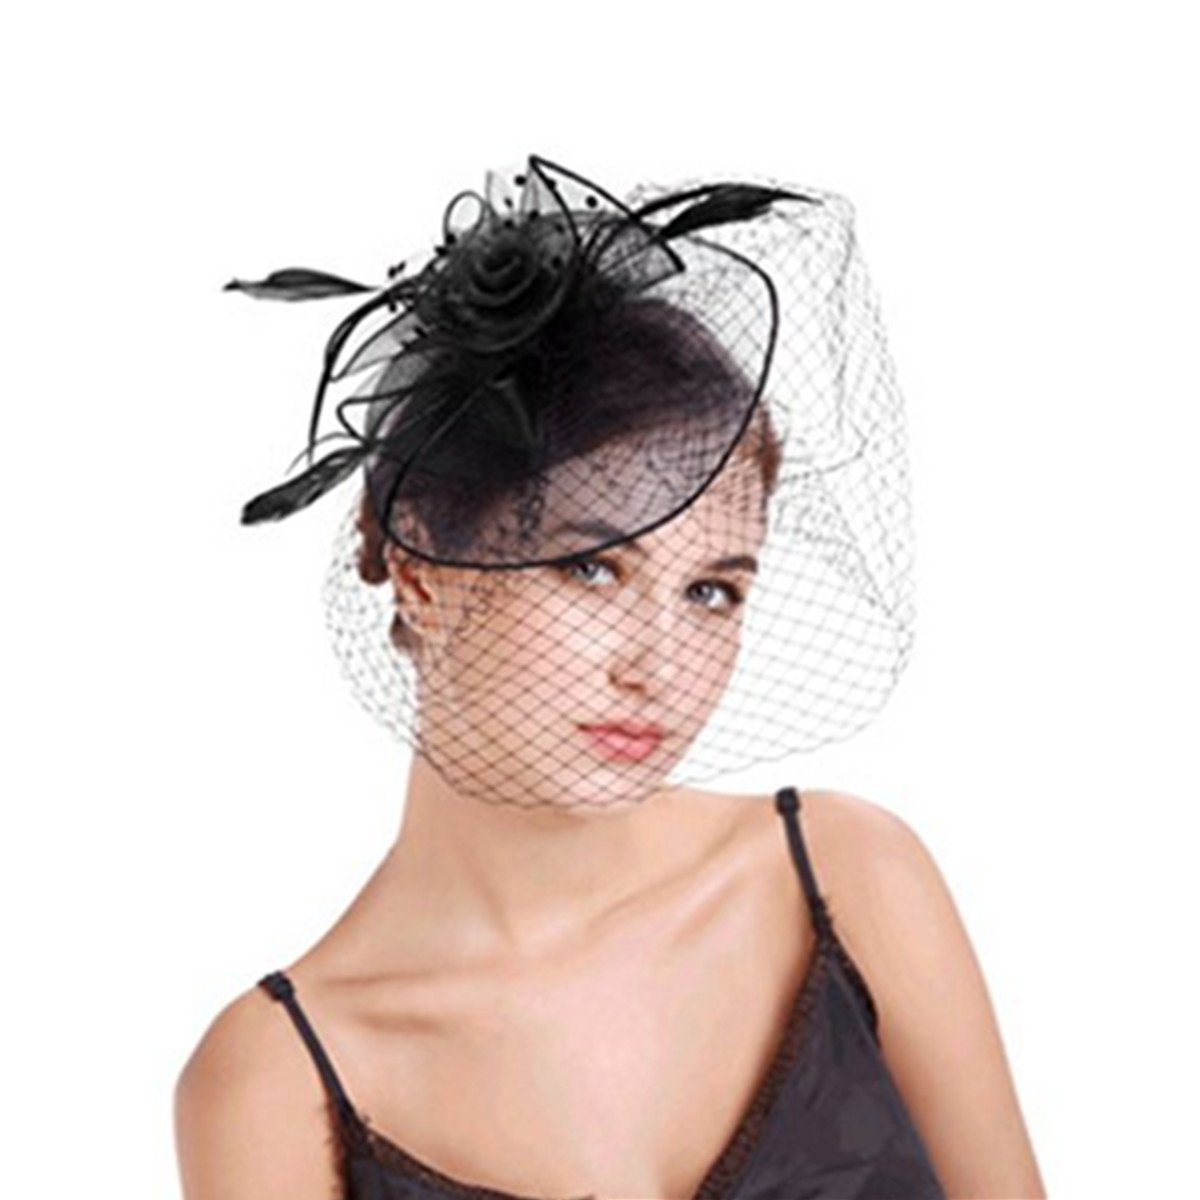 MITIN Fascinator Hat, Vintage Mesh Net Wedding Feather Fascinators Headband and Clip for Girls and Women Black